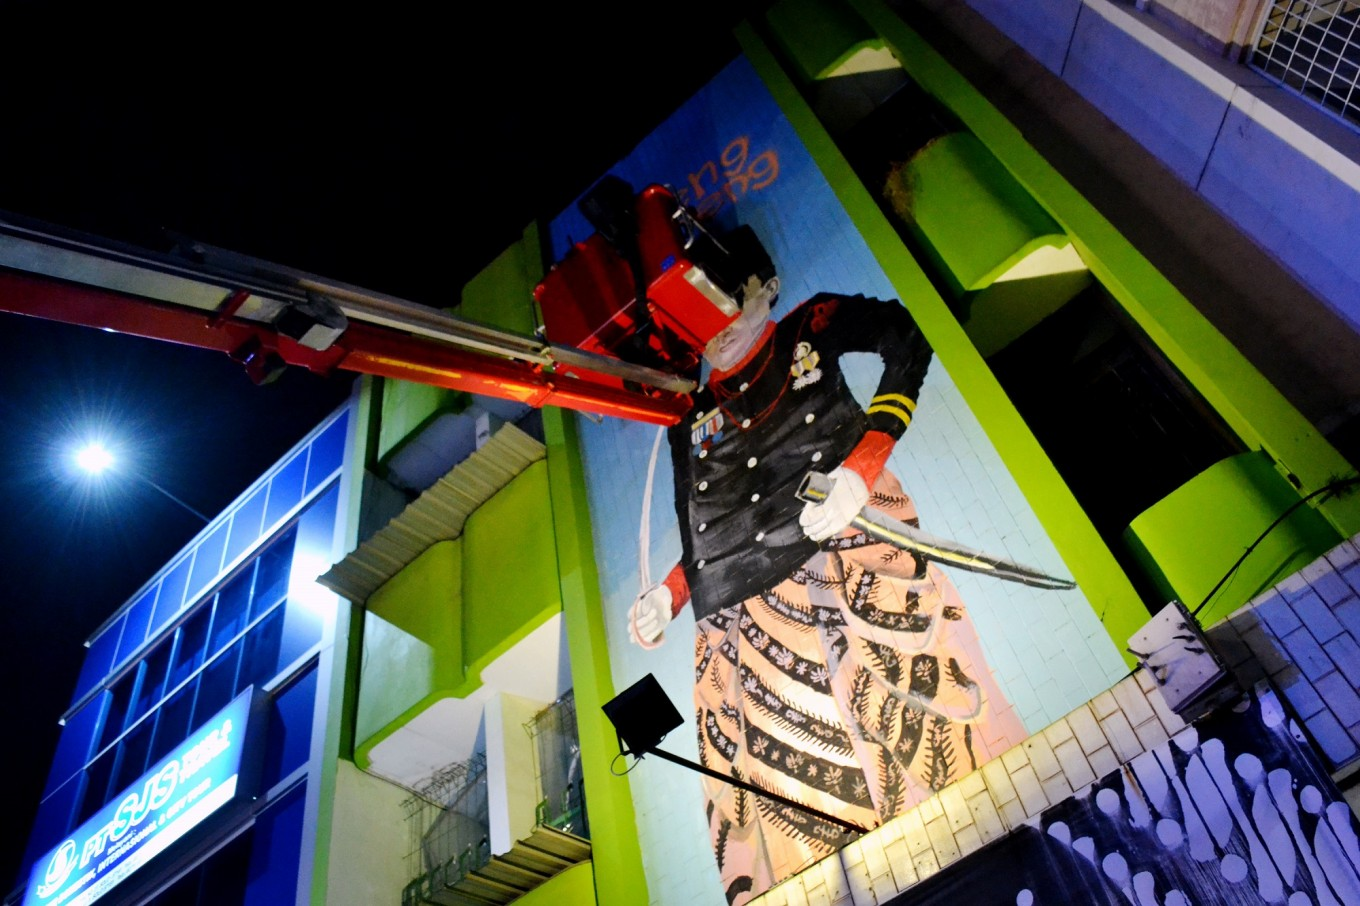 An artist paints a mural with the help of the fire brigade's equipment.